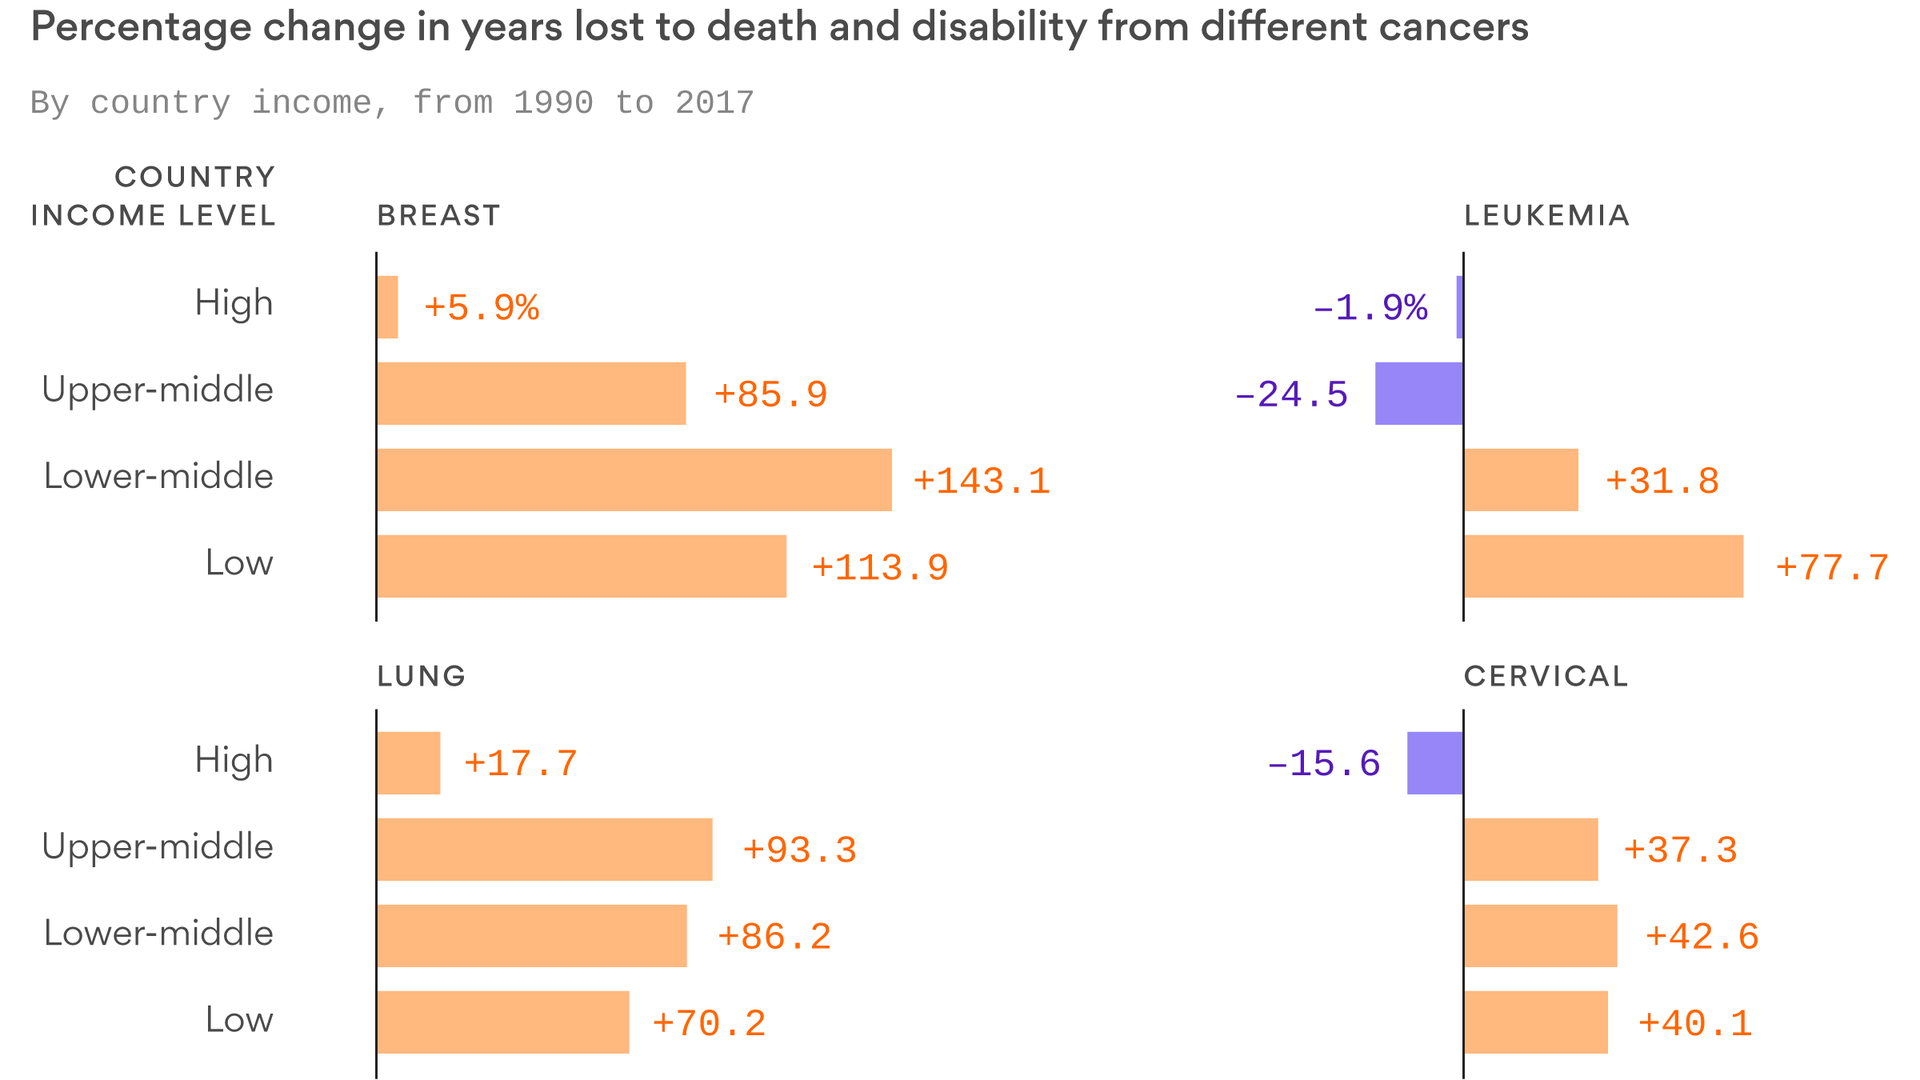 Poorer countries are falling further behind on cancer outcomes